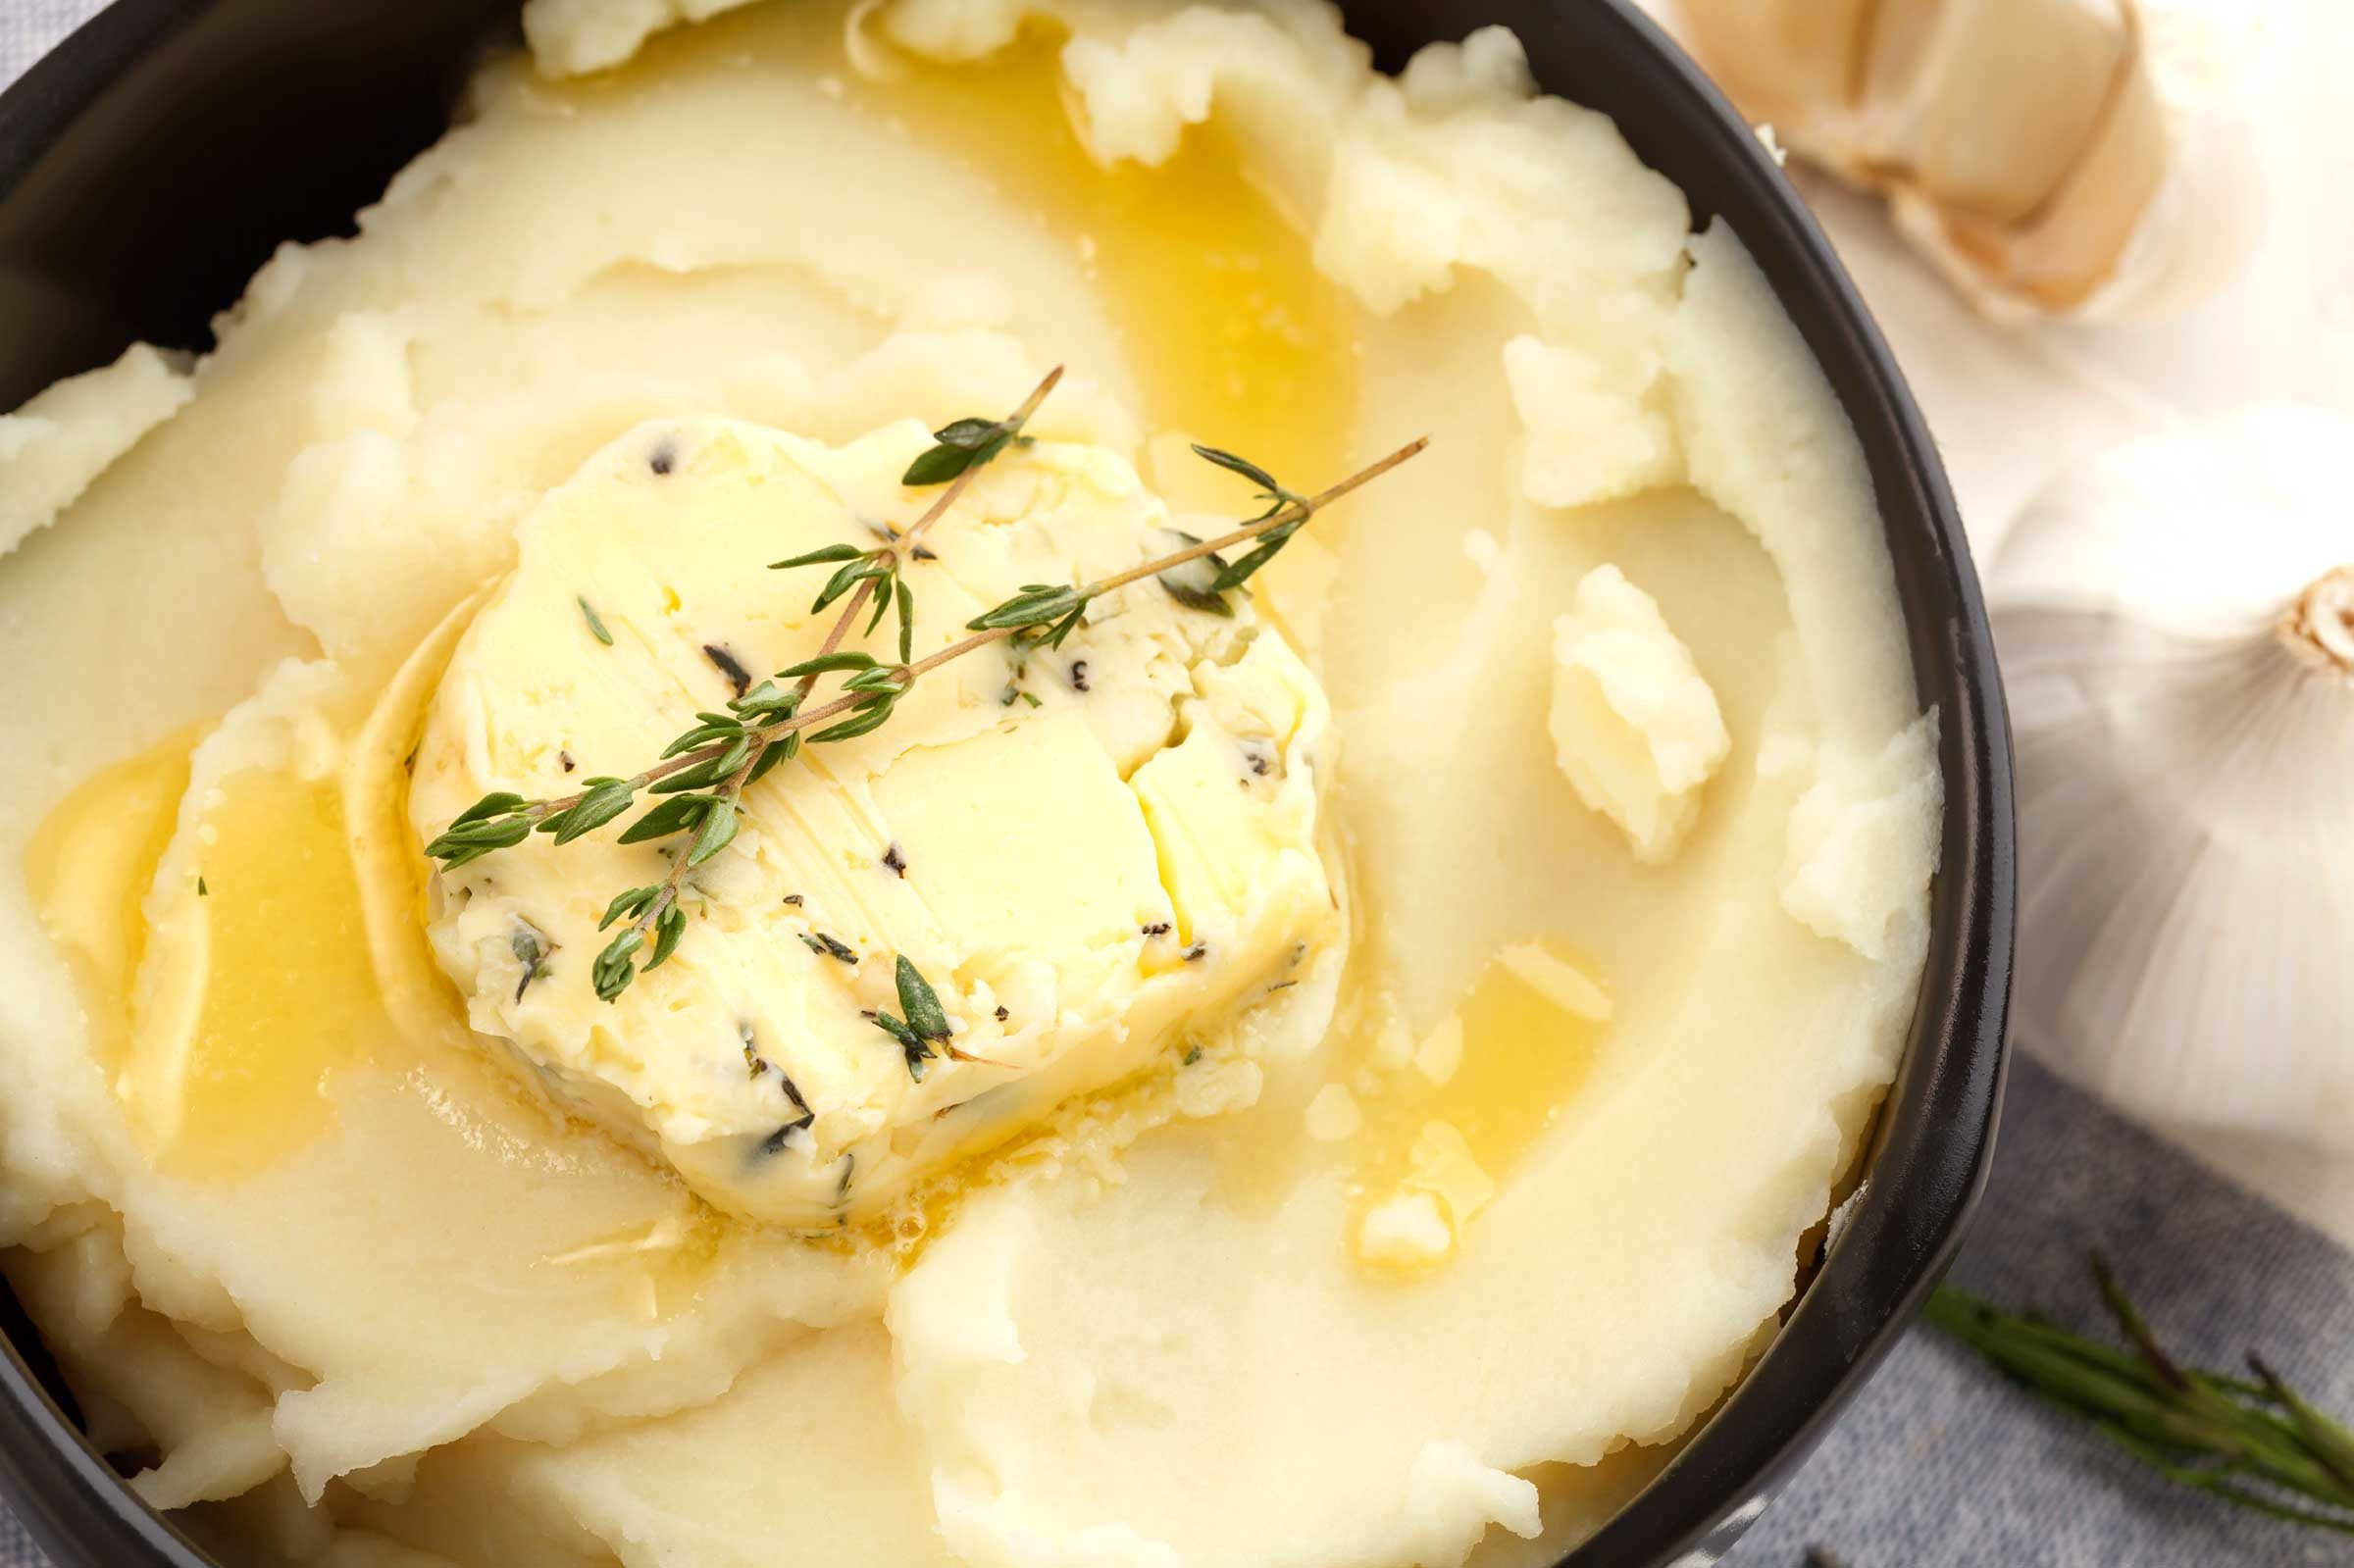 Mashed potatoes with whole milk and margarine: 237 calories, 9 g fat per cup